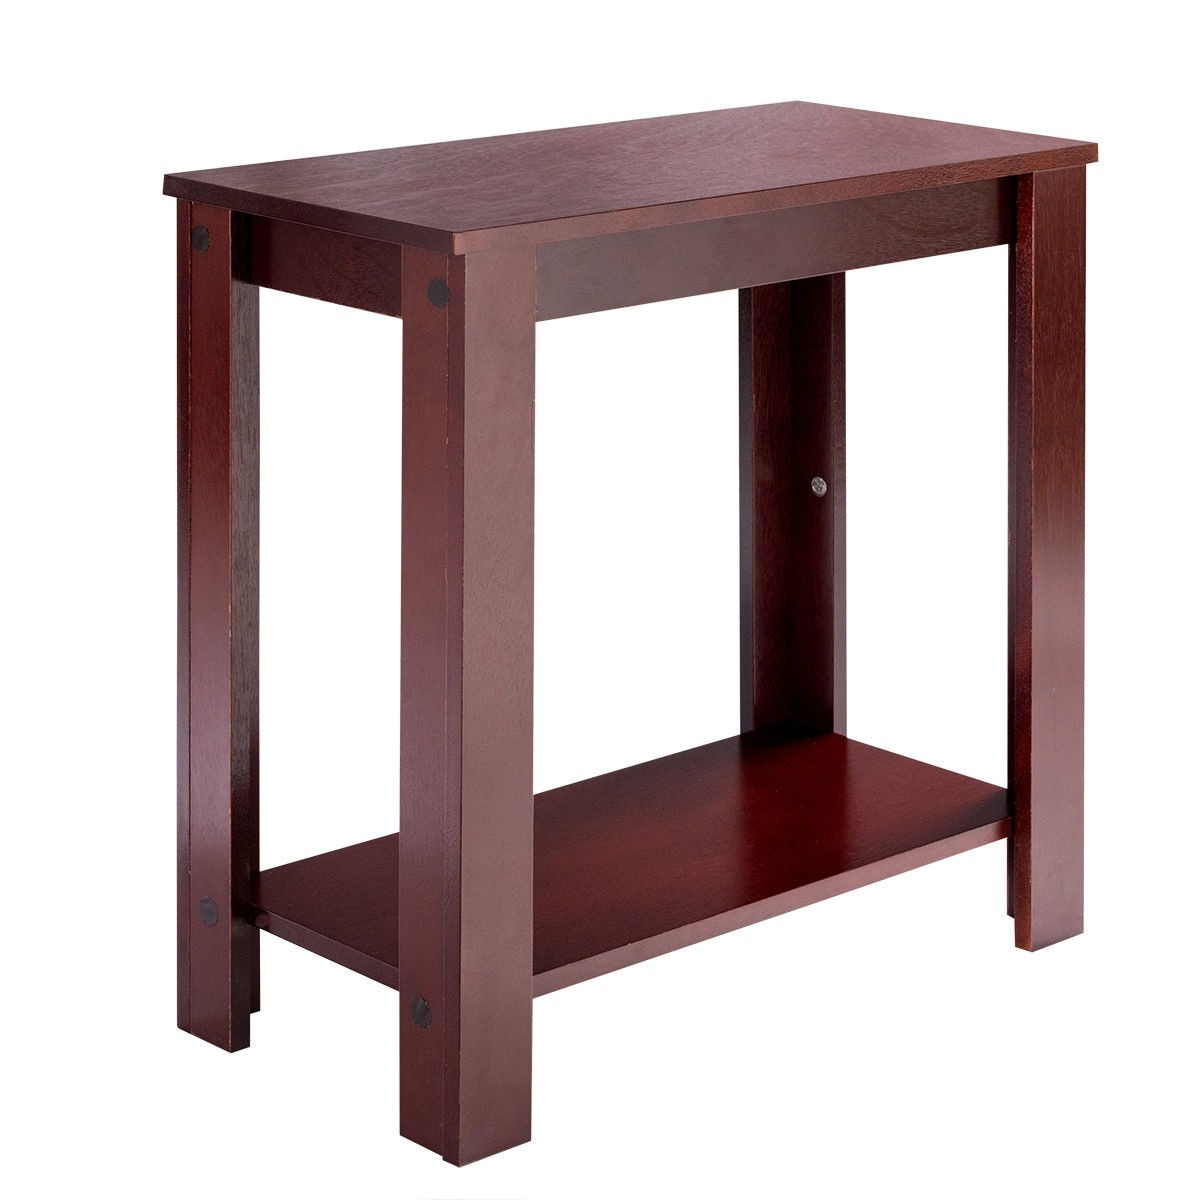 espresso wooden sofa end table side tables accent wood low outdoor broyhill furniture simple dog pink thomasville mid century modern coffee with glass top and stone dining